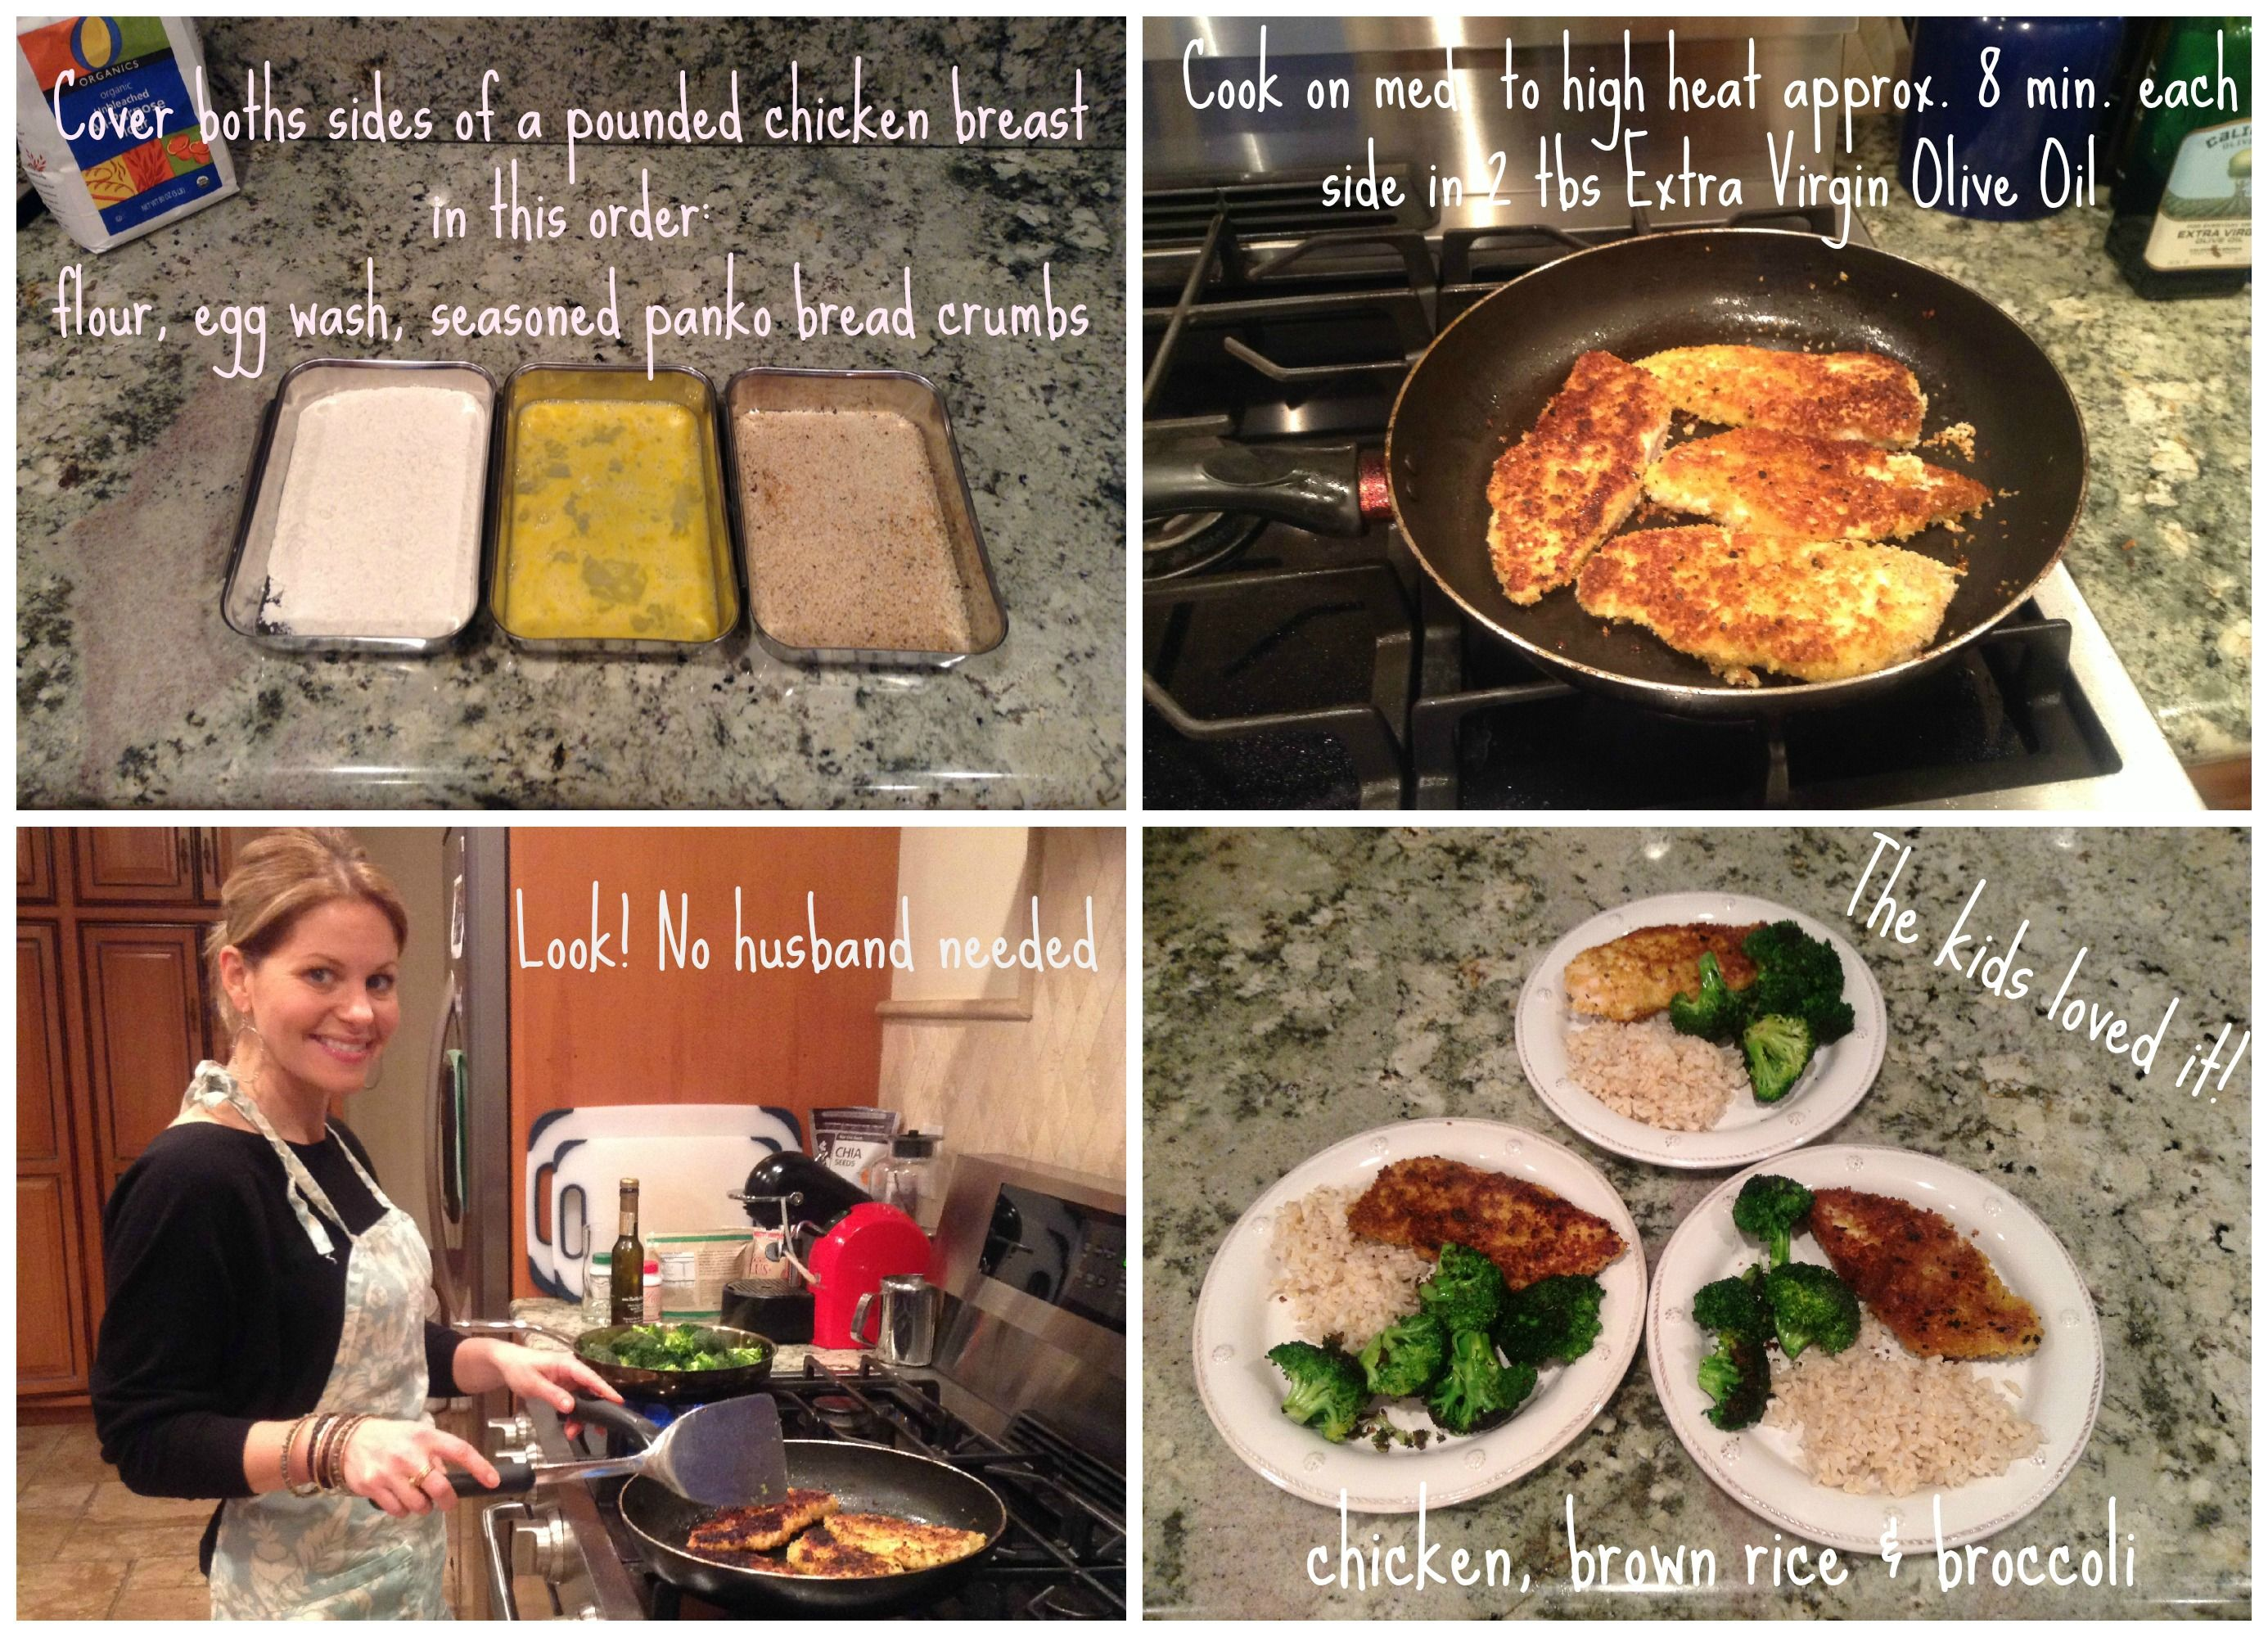 Healthy Dinner Candace Cameron Bure Healthy Family Dinners Recipes Healthy Recipes